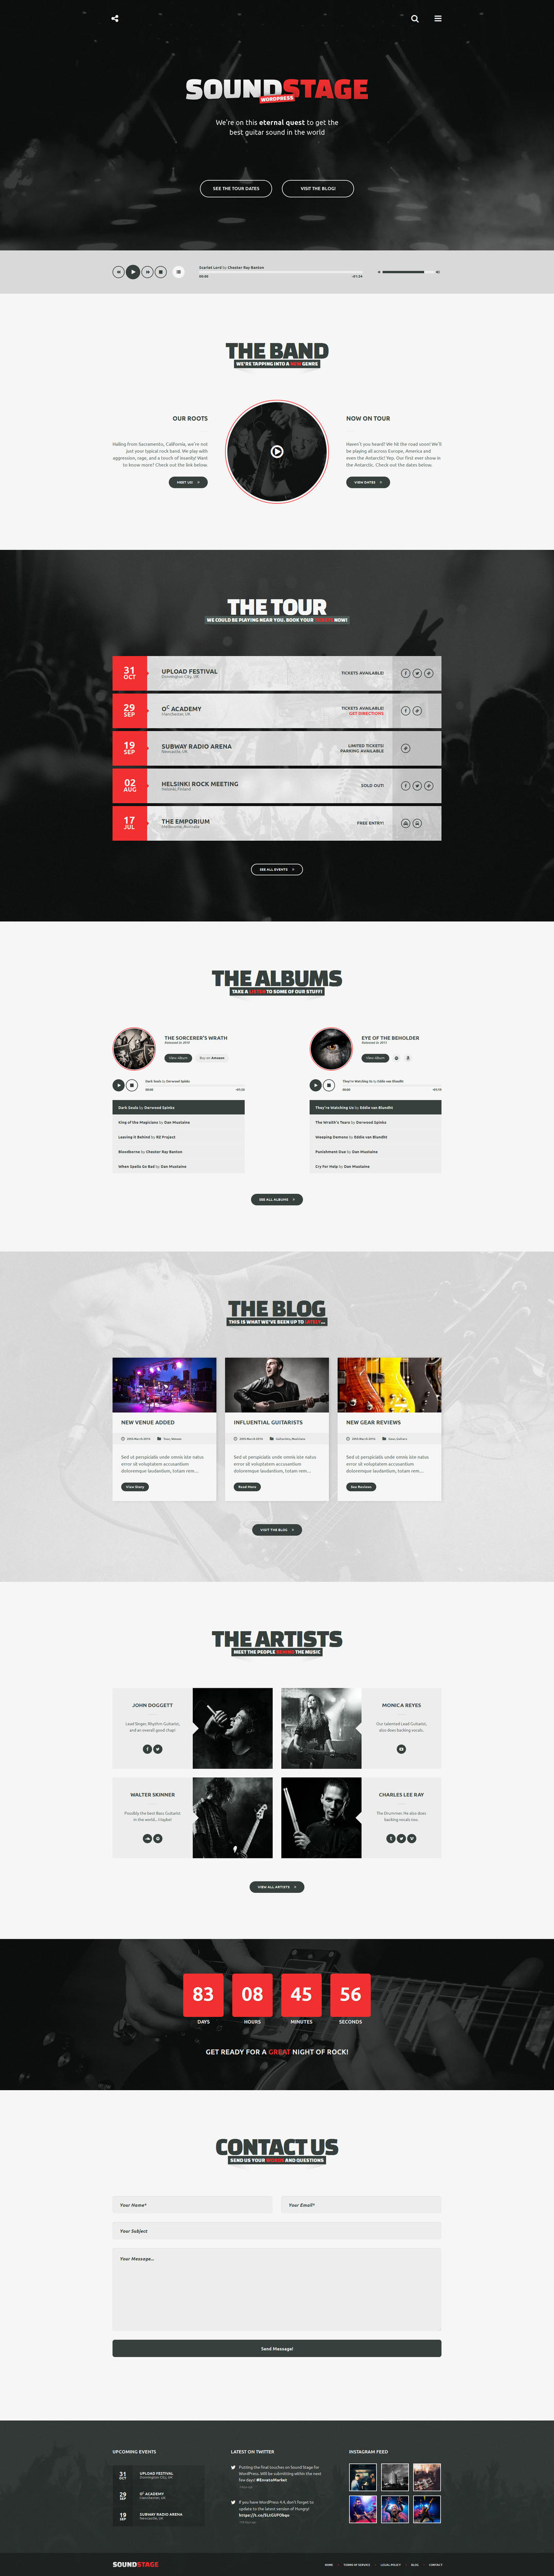 Custom WordPress Theme Development by SubatomicThemes - 109680